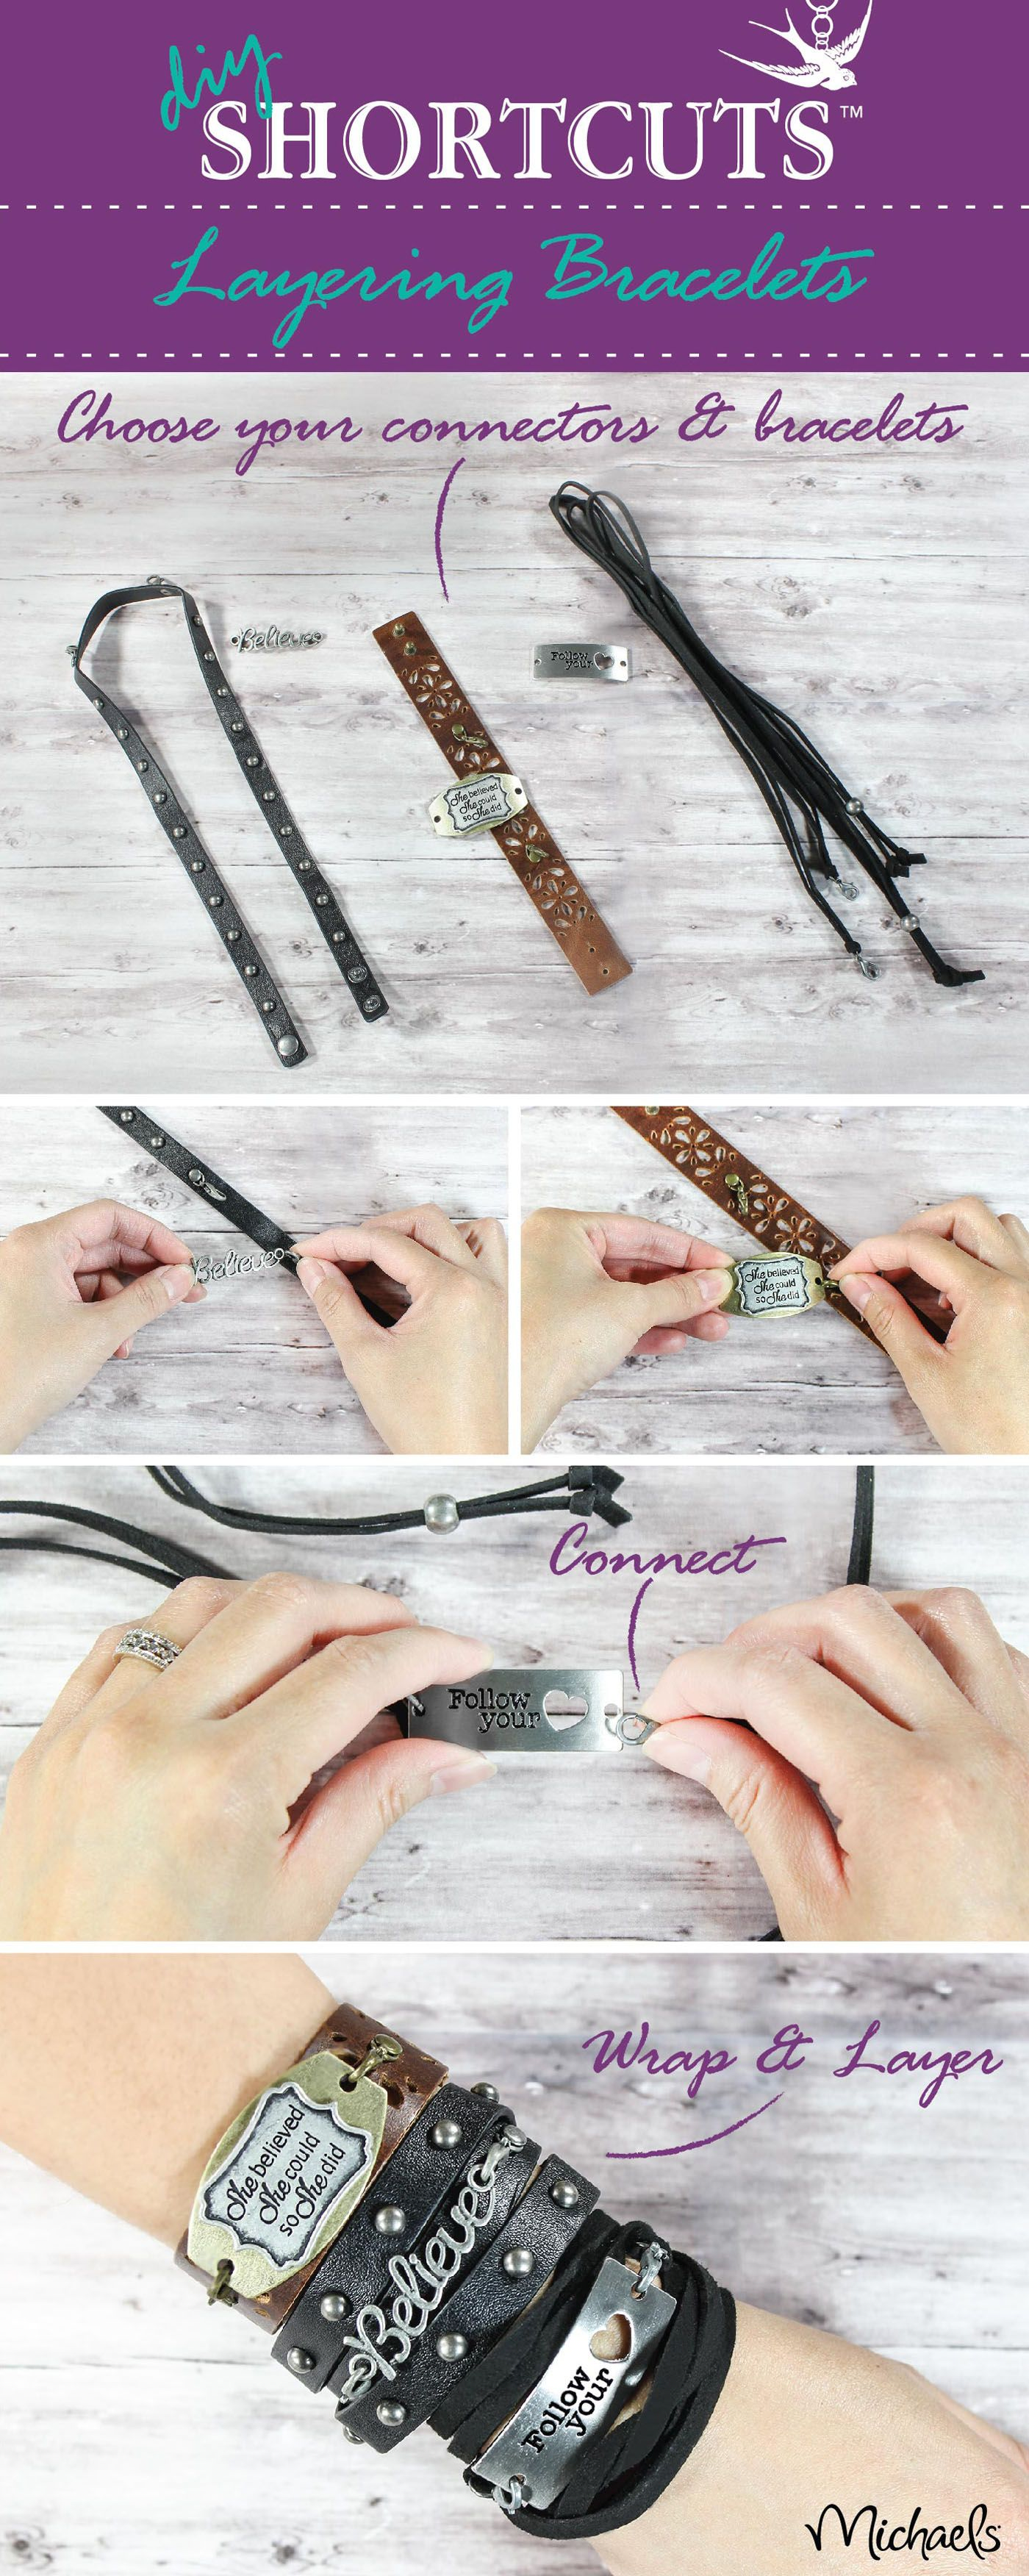 Creating your own DIY  personalized boho style bracelets is super easy using Shorcuts components.